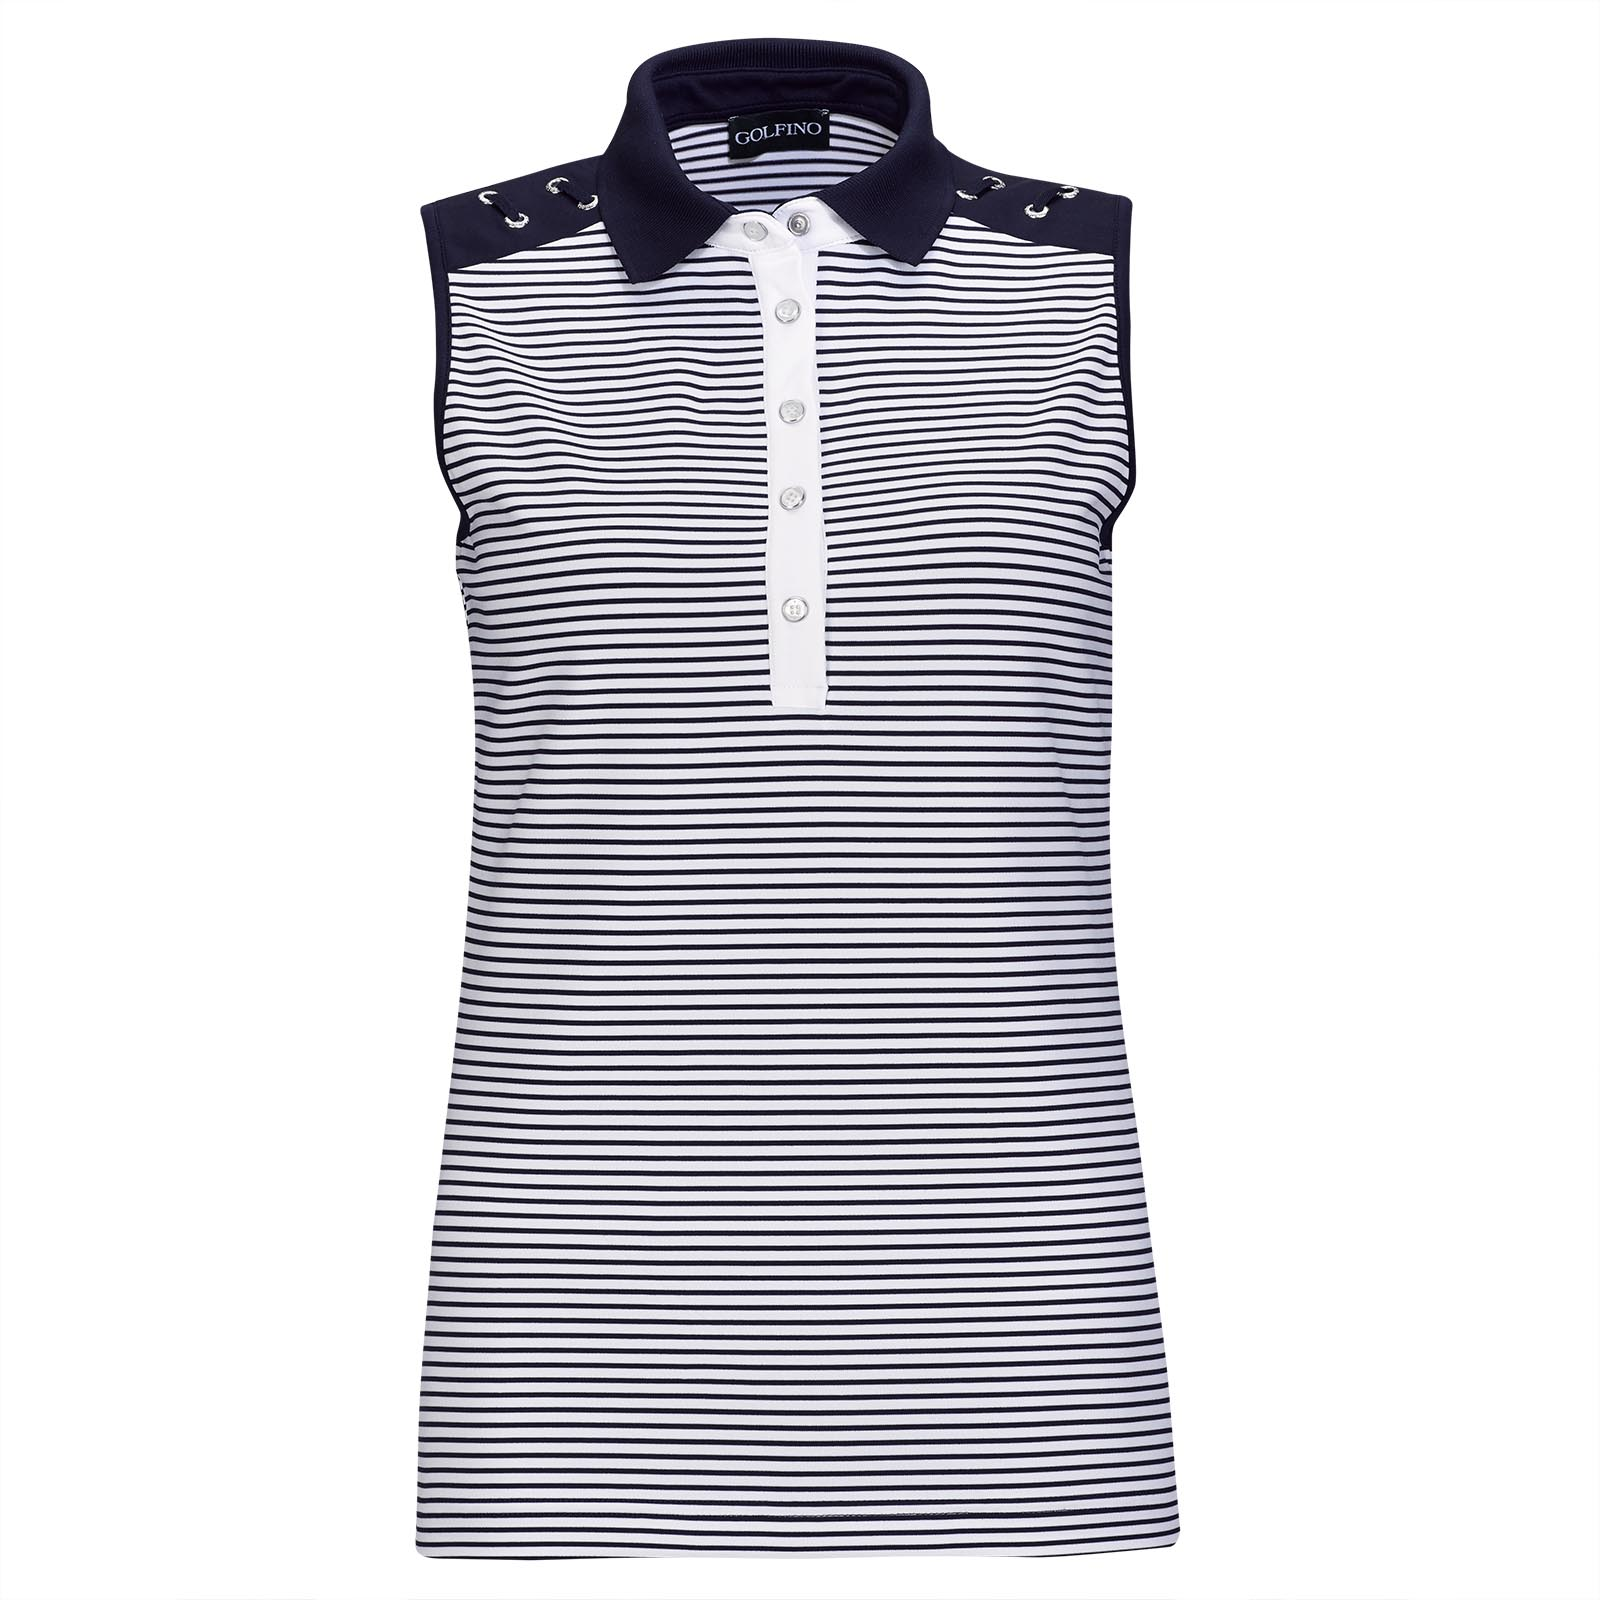 Ärmelloser Nautical Stripes Damen Golf-Troyer als trendstarker 1st-Layer